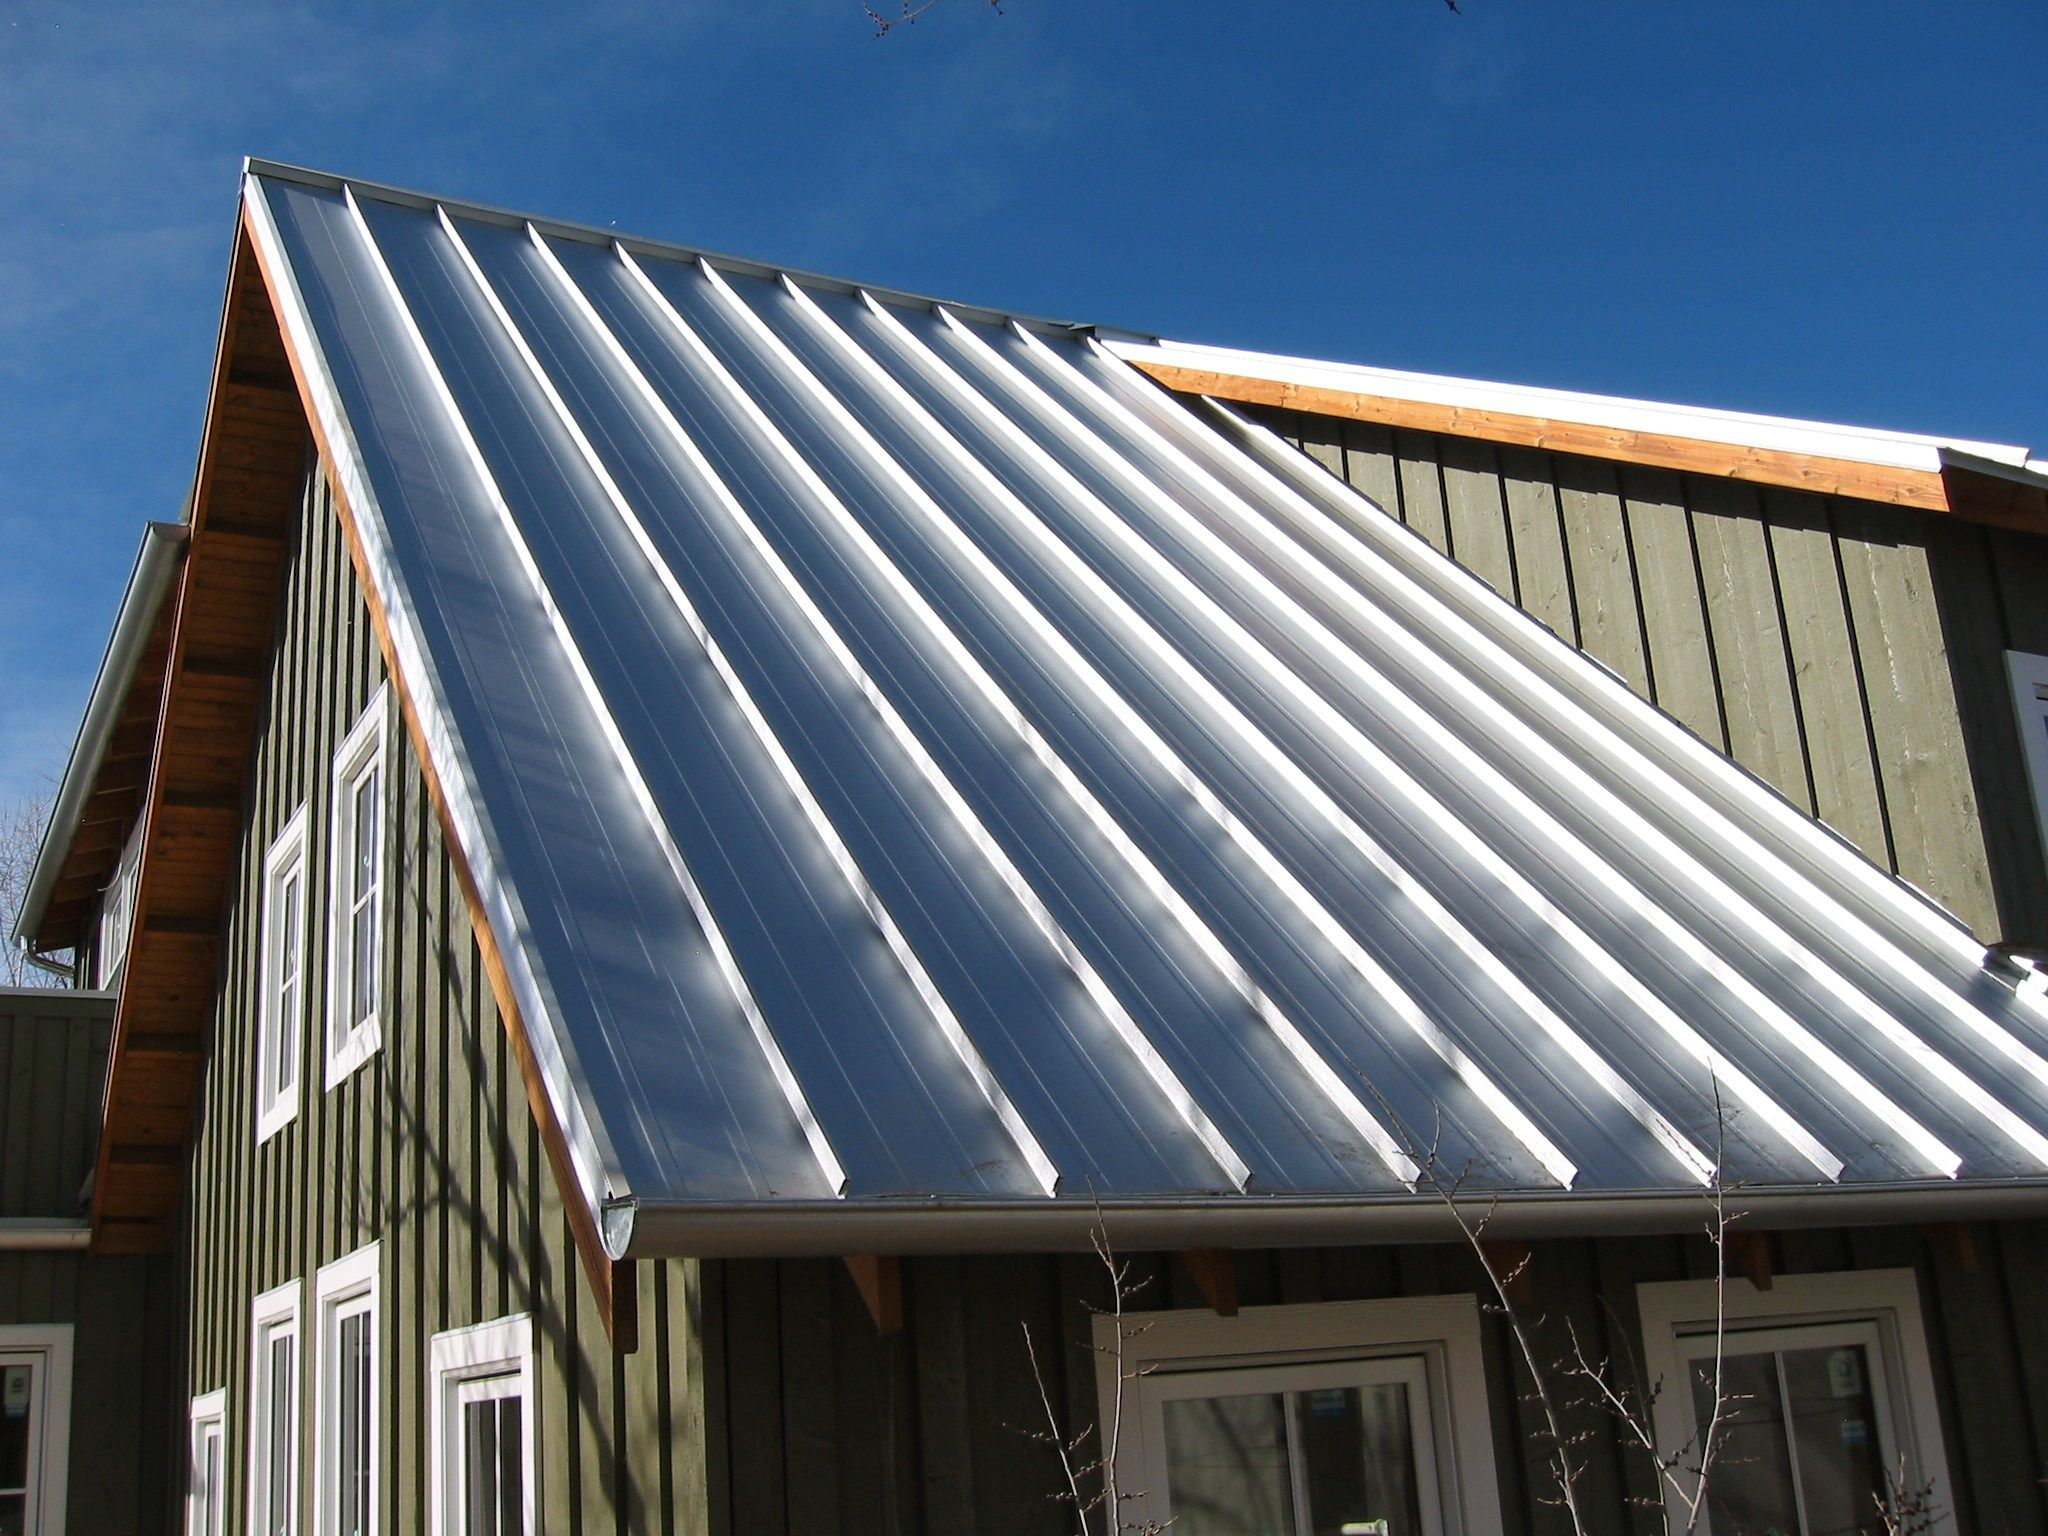 Image Result For Galvanized Metal Roof House Aluminum Roof Roofing Metal Roof Houses